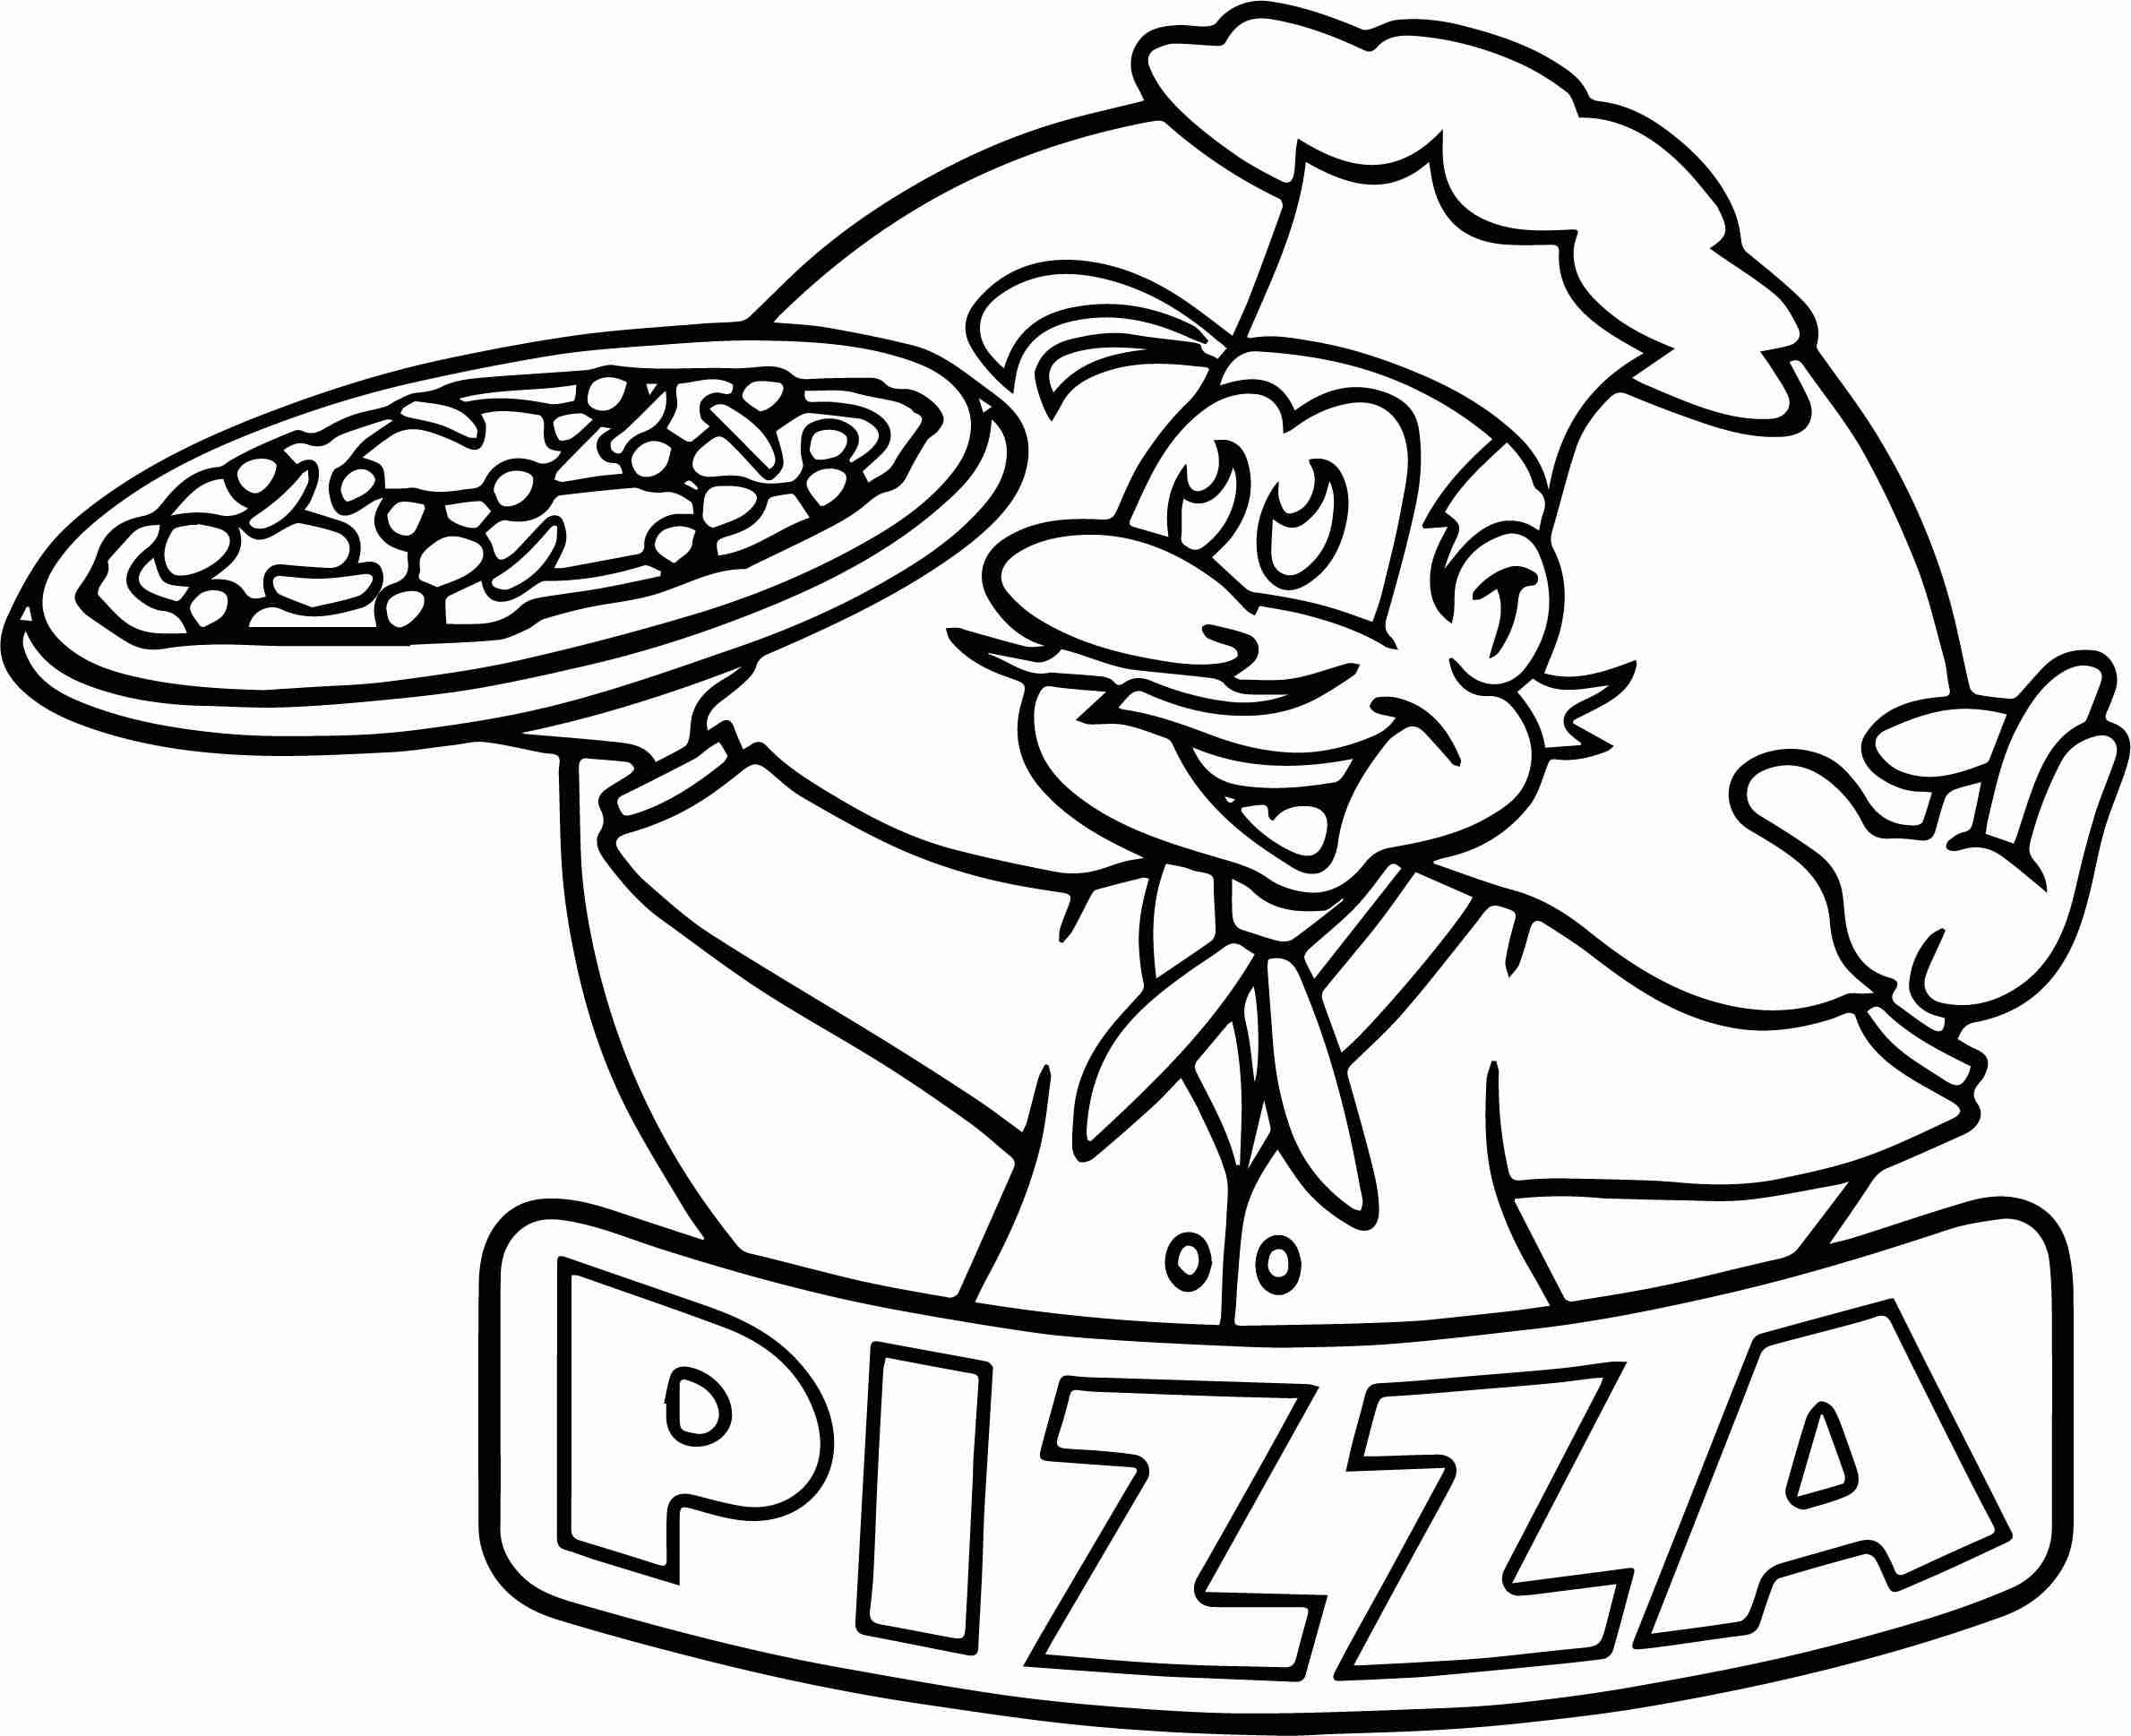 2379x1938 Advice Pizza Hut Coloring Pages Cartoon Pictur